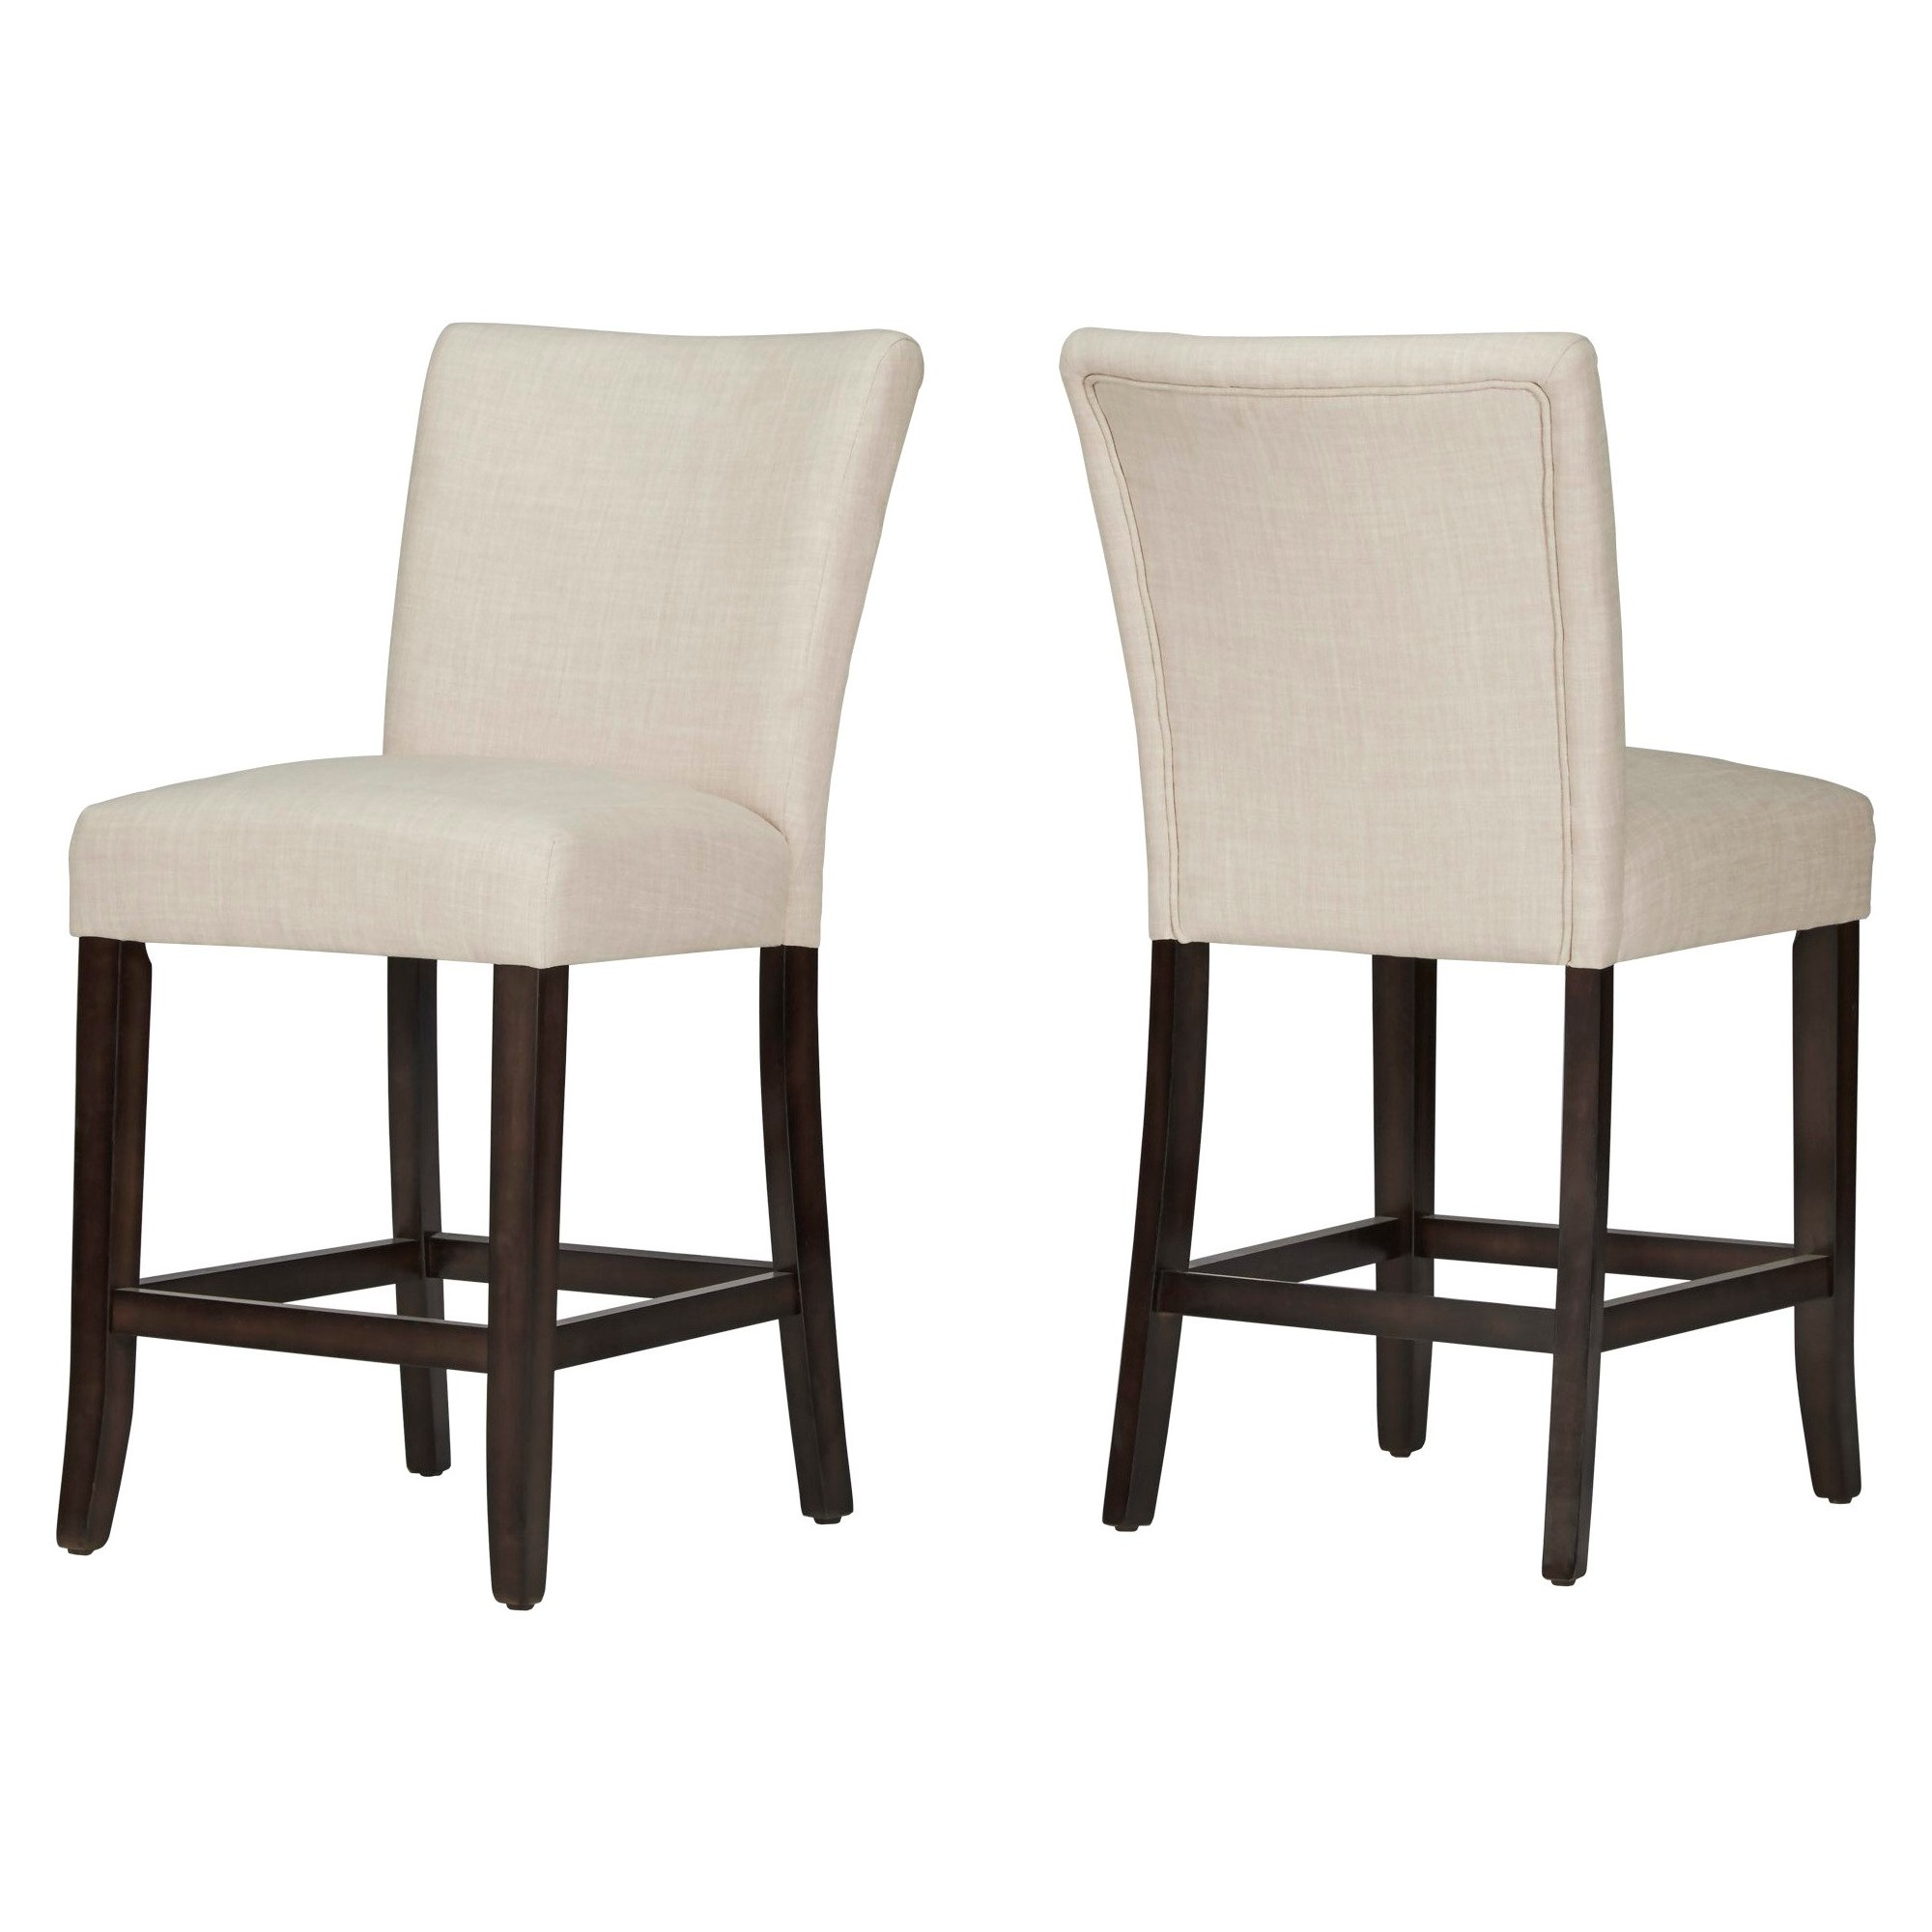 Inspireq Quinby 24 Counter Stool Oatmeal Set Of 2 Oatmeal